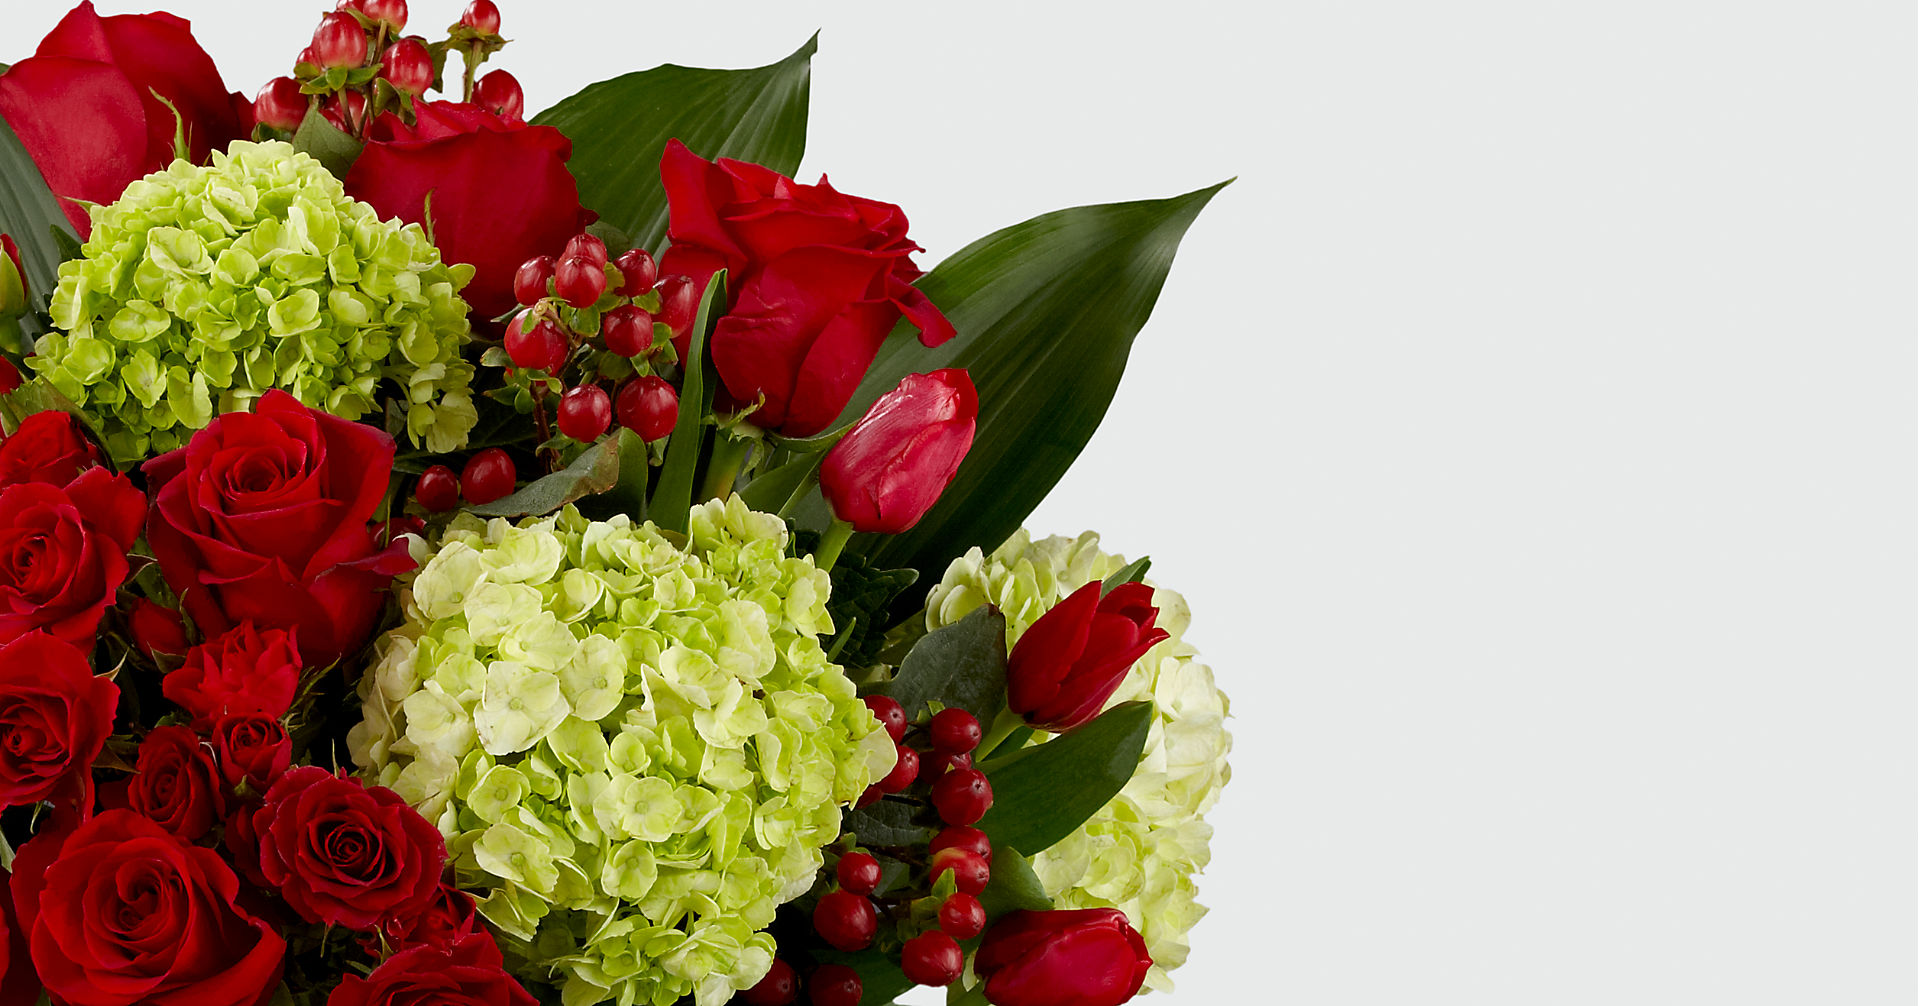 Festive Finesse Holiday Luxury Bouquet - VASE INCLUDED - Image 3 Of 3